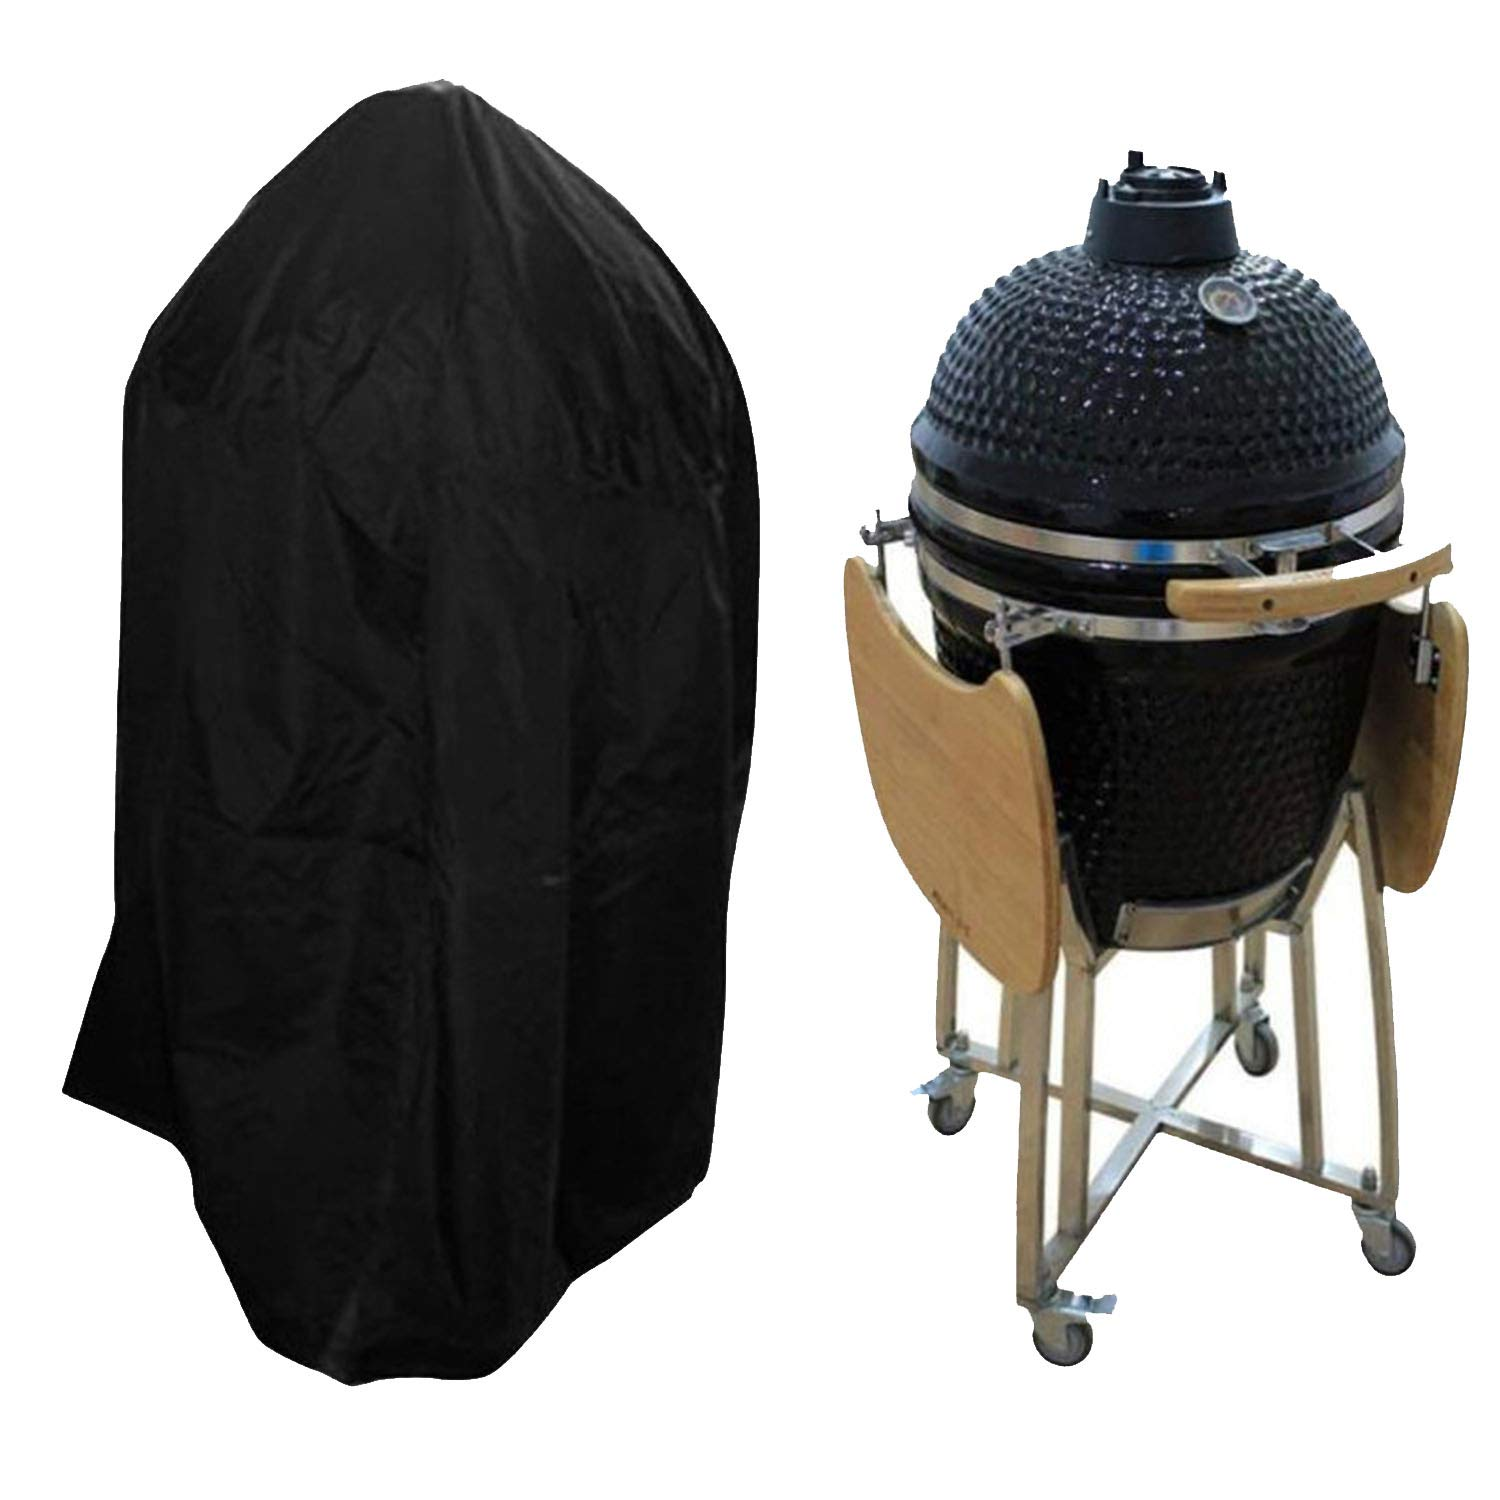 Amazon.com: Black Waterproof BBQ Cover Heavy Duty BBQ Accessories ...